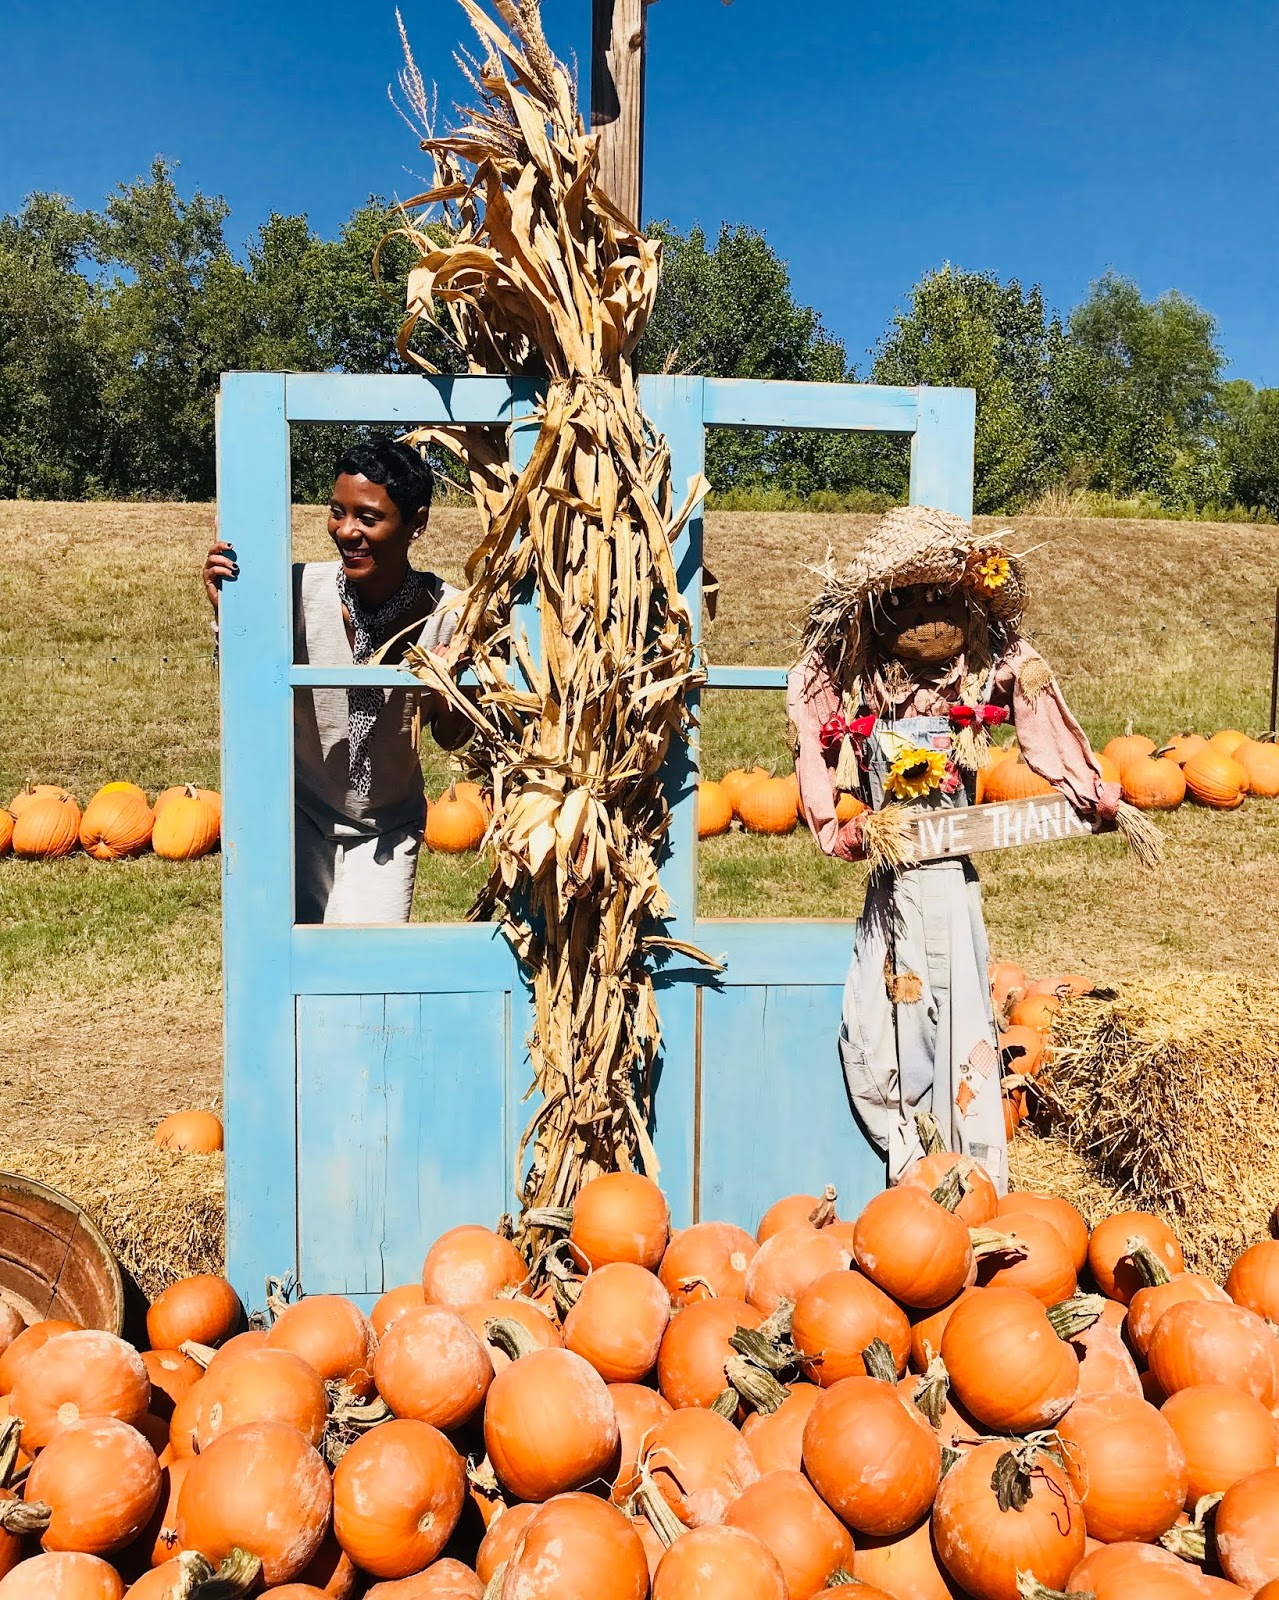 The Cutest Pumpkin Baskets, Posing With The Scare Crows And Getting Lost In The CRAZIEST Maze!